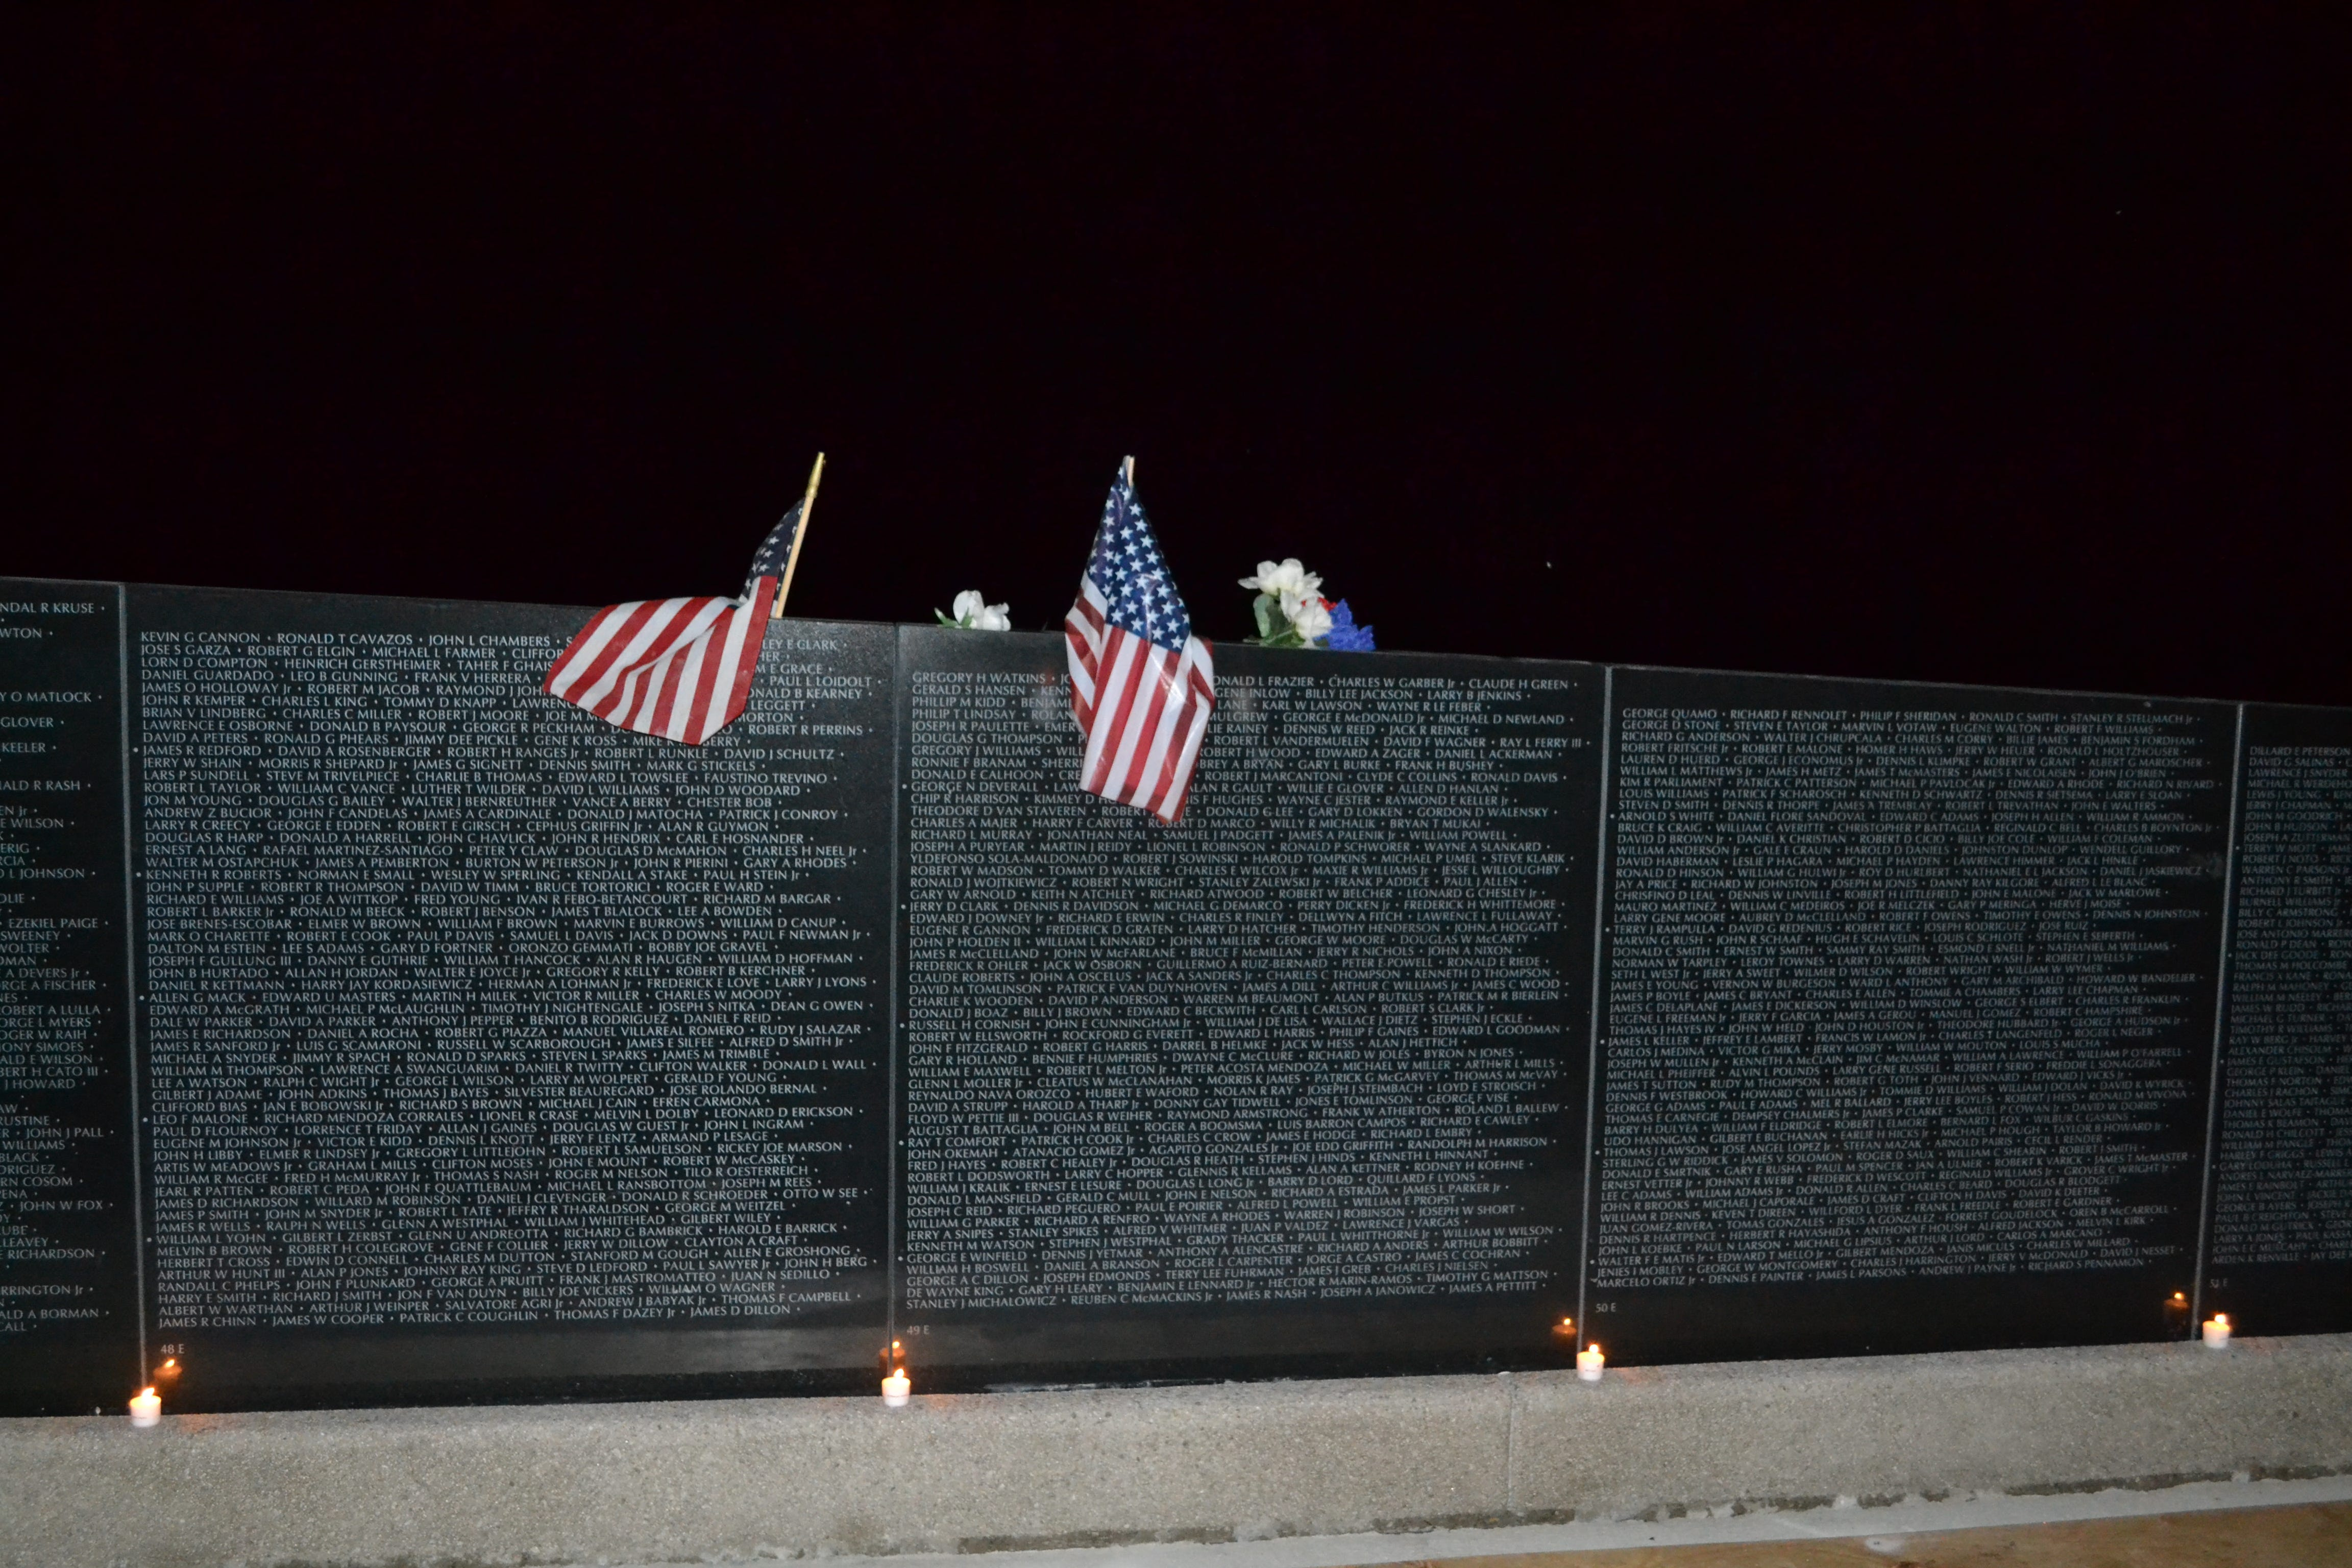 Candles, flags and flowers adorn the recently installed panels at Missouri's National Veterans Memorial during a candlelight ceremony Friday, Sept. 21, 2018, in Perryville.